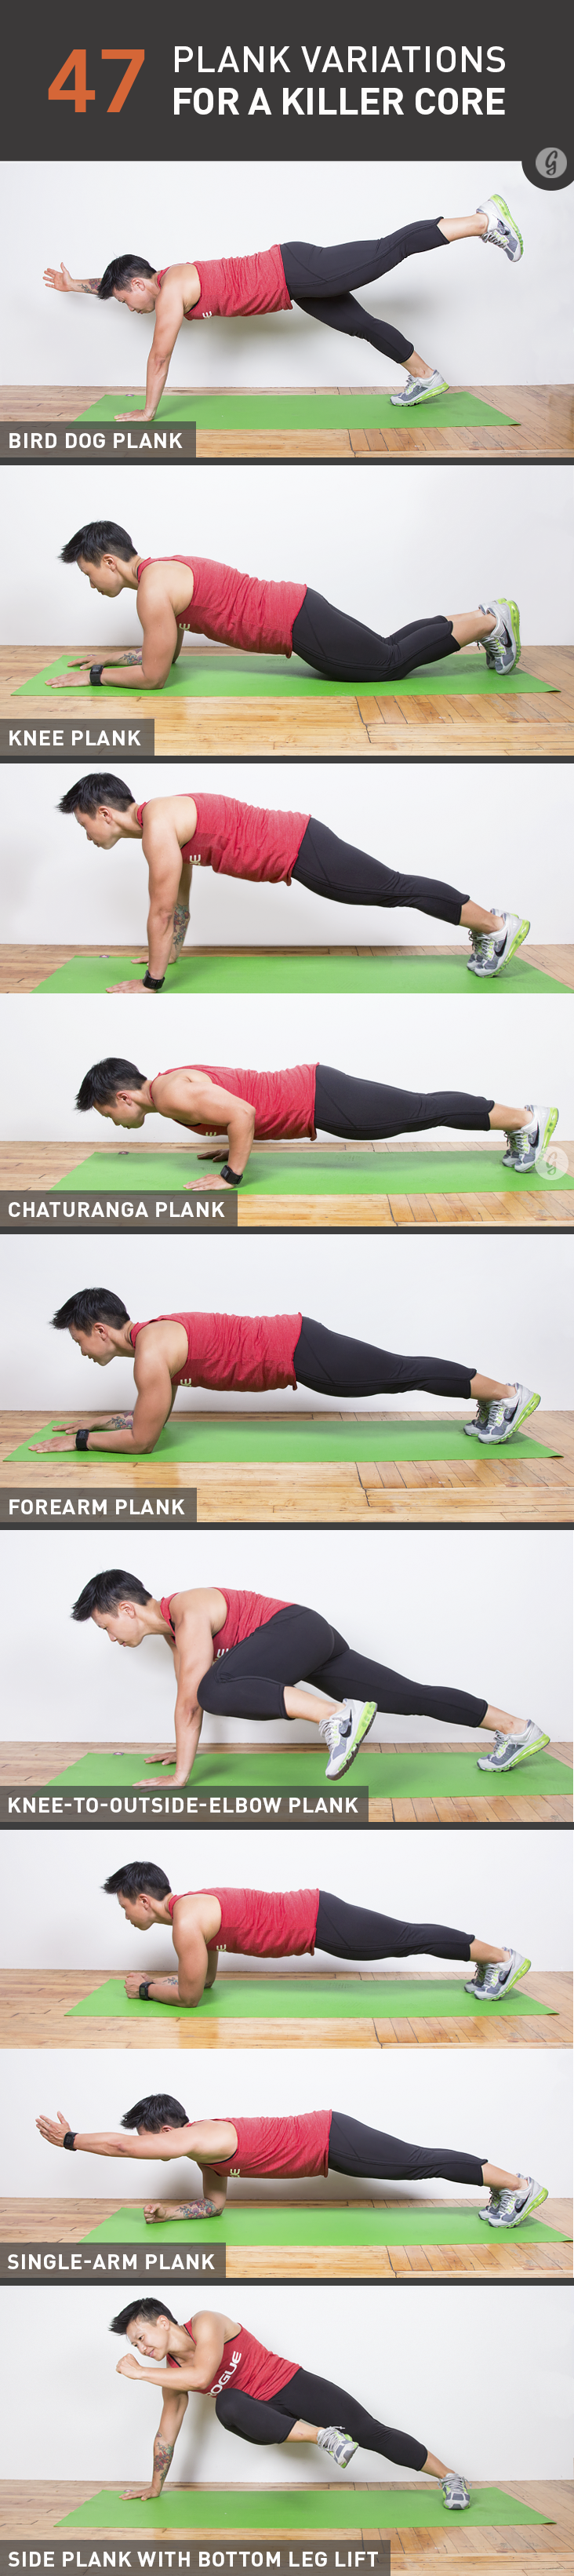 It's time to kiss those crunches good-bye. With nearly 50 ways to challenge your core and... http://greatist.com/move/plank-variations-for-core-strength